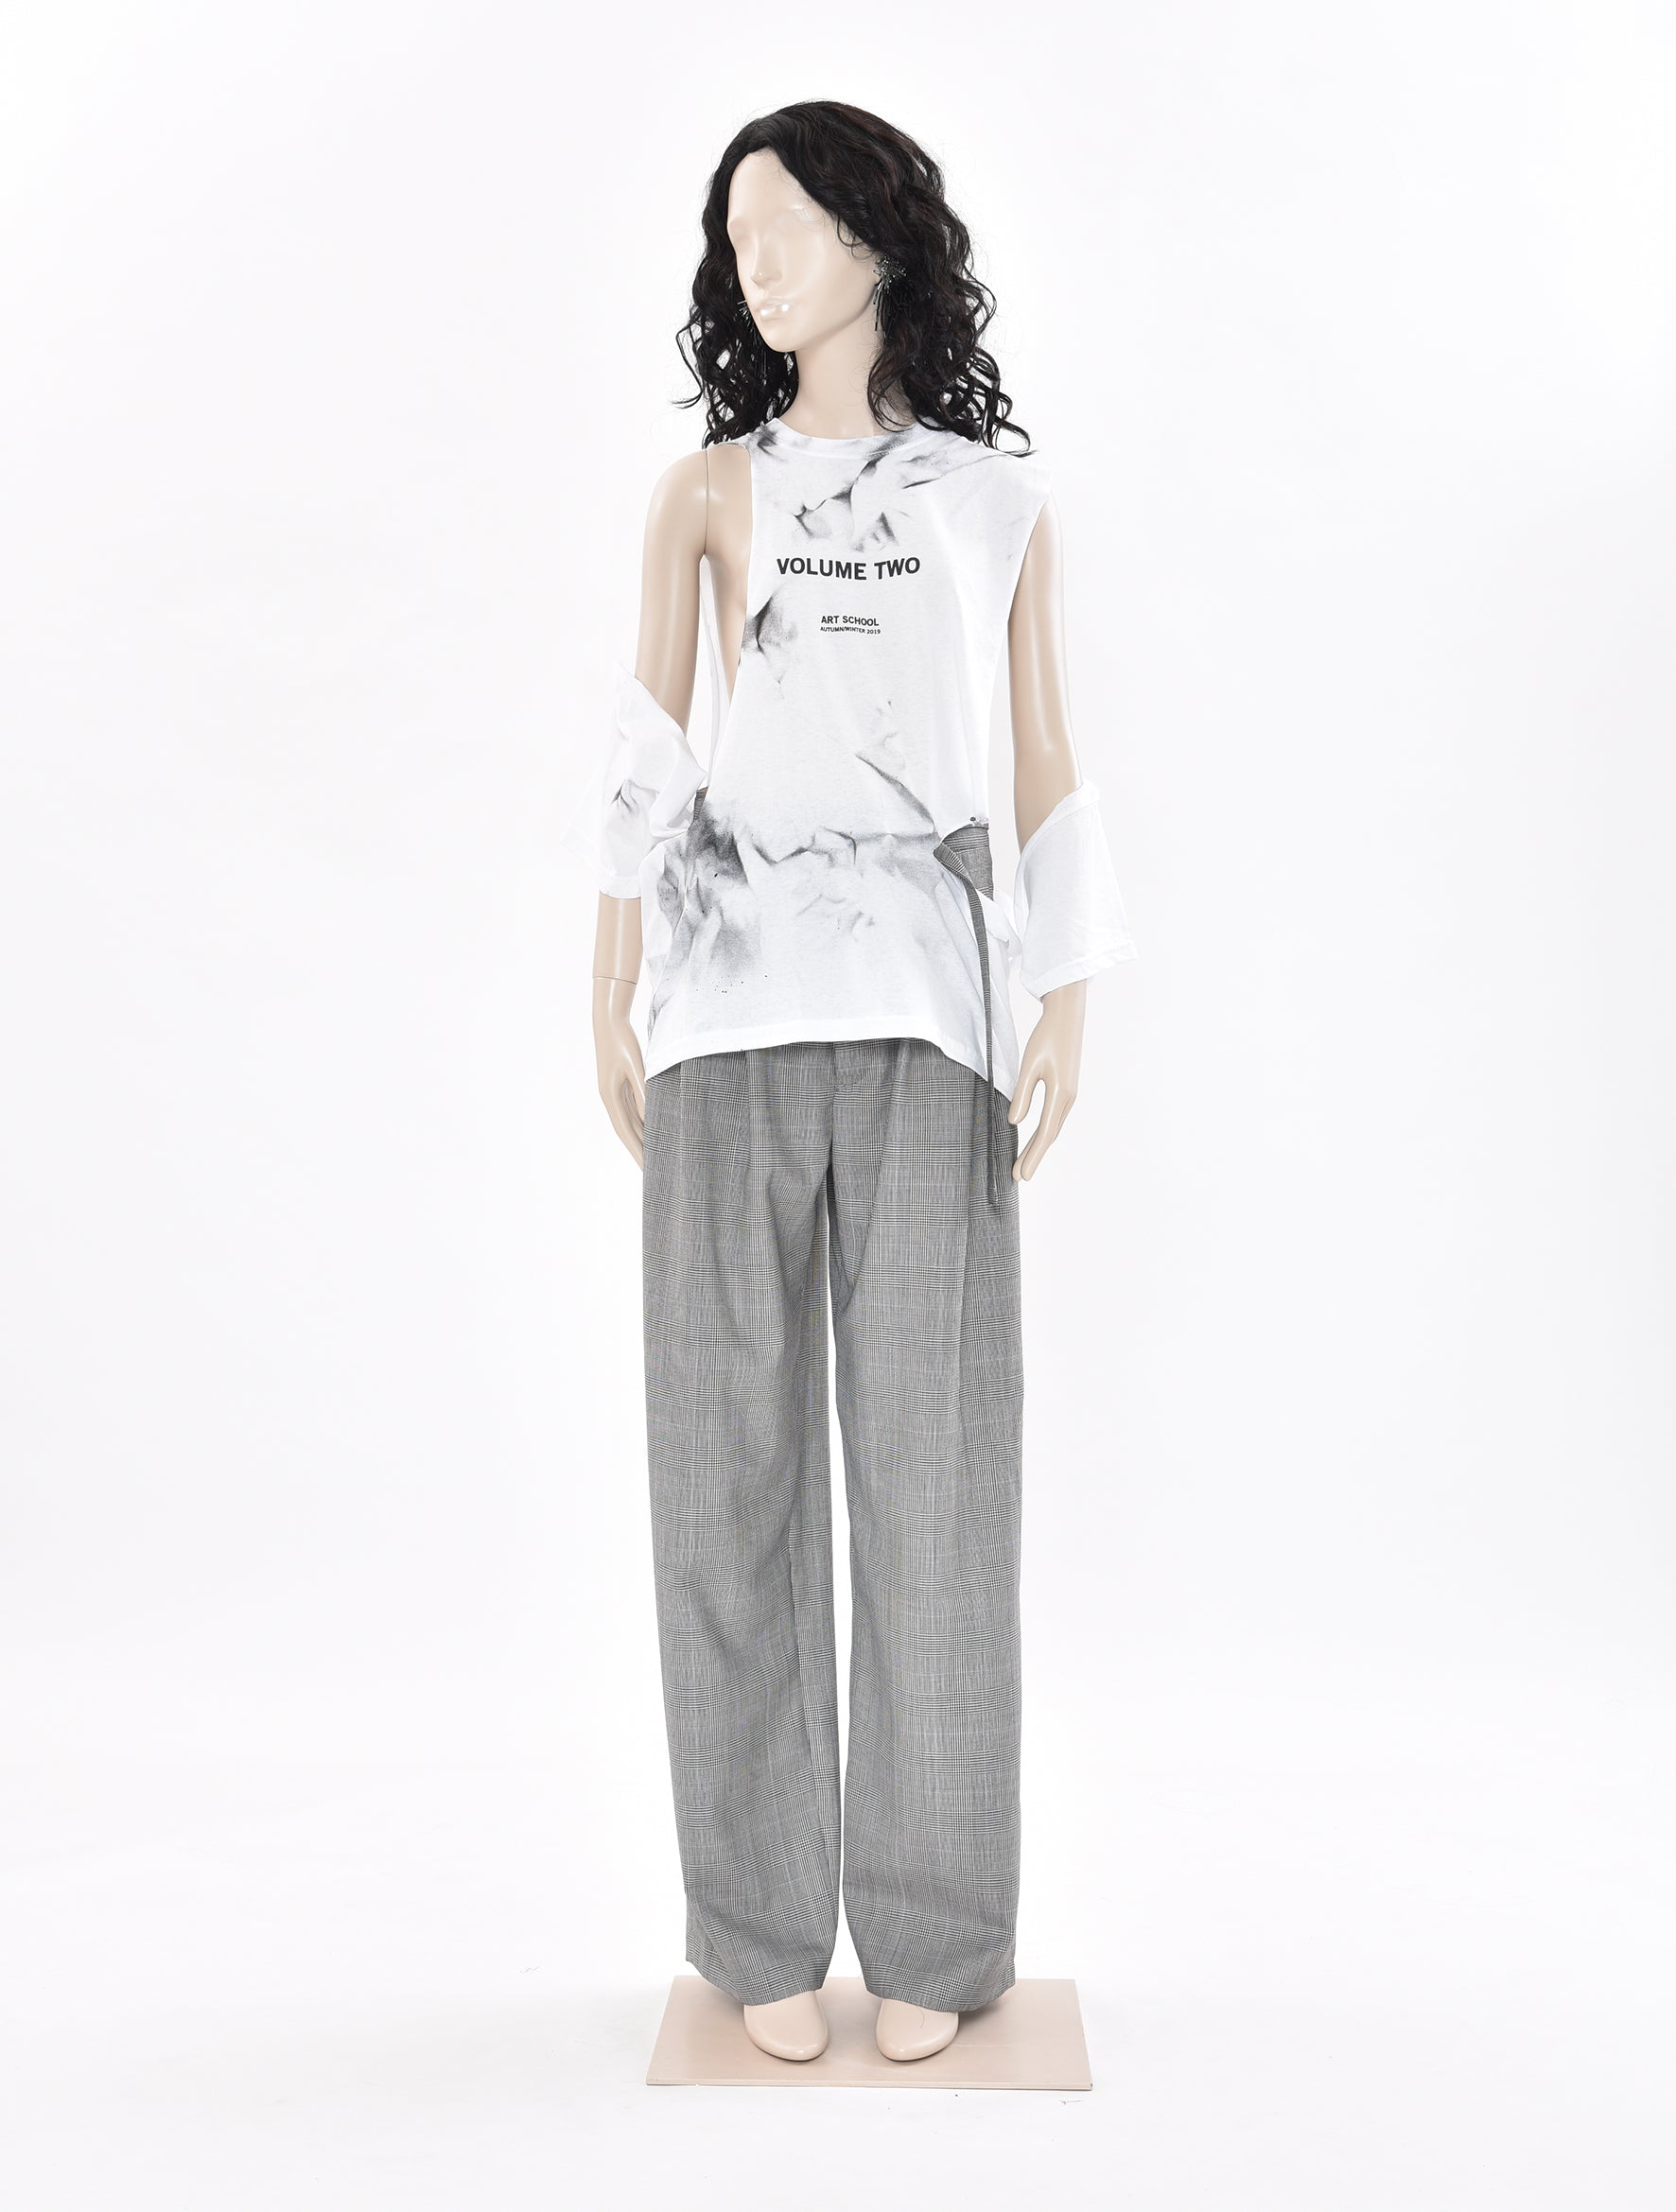 Vol 2 Shredded Cropped T-Shirt